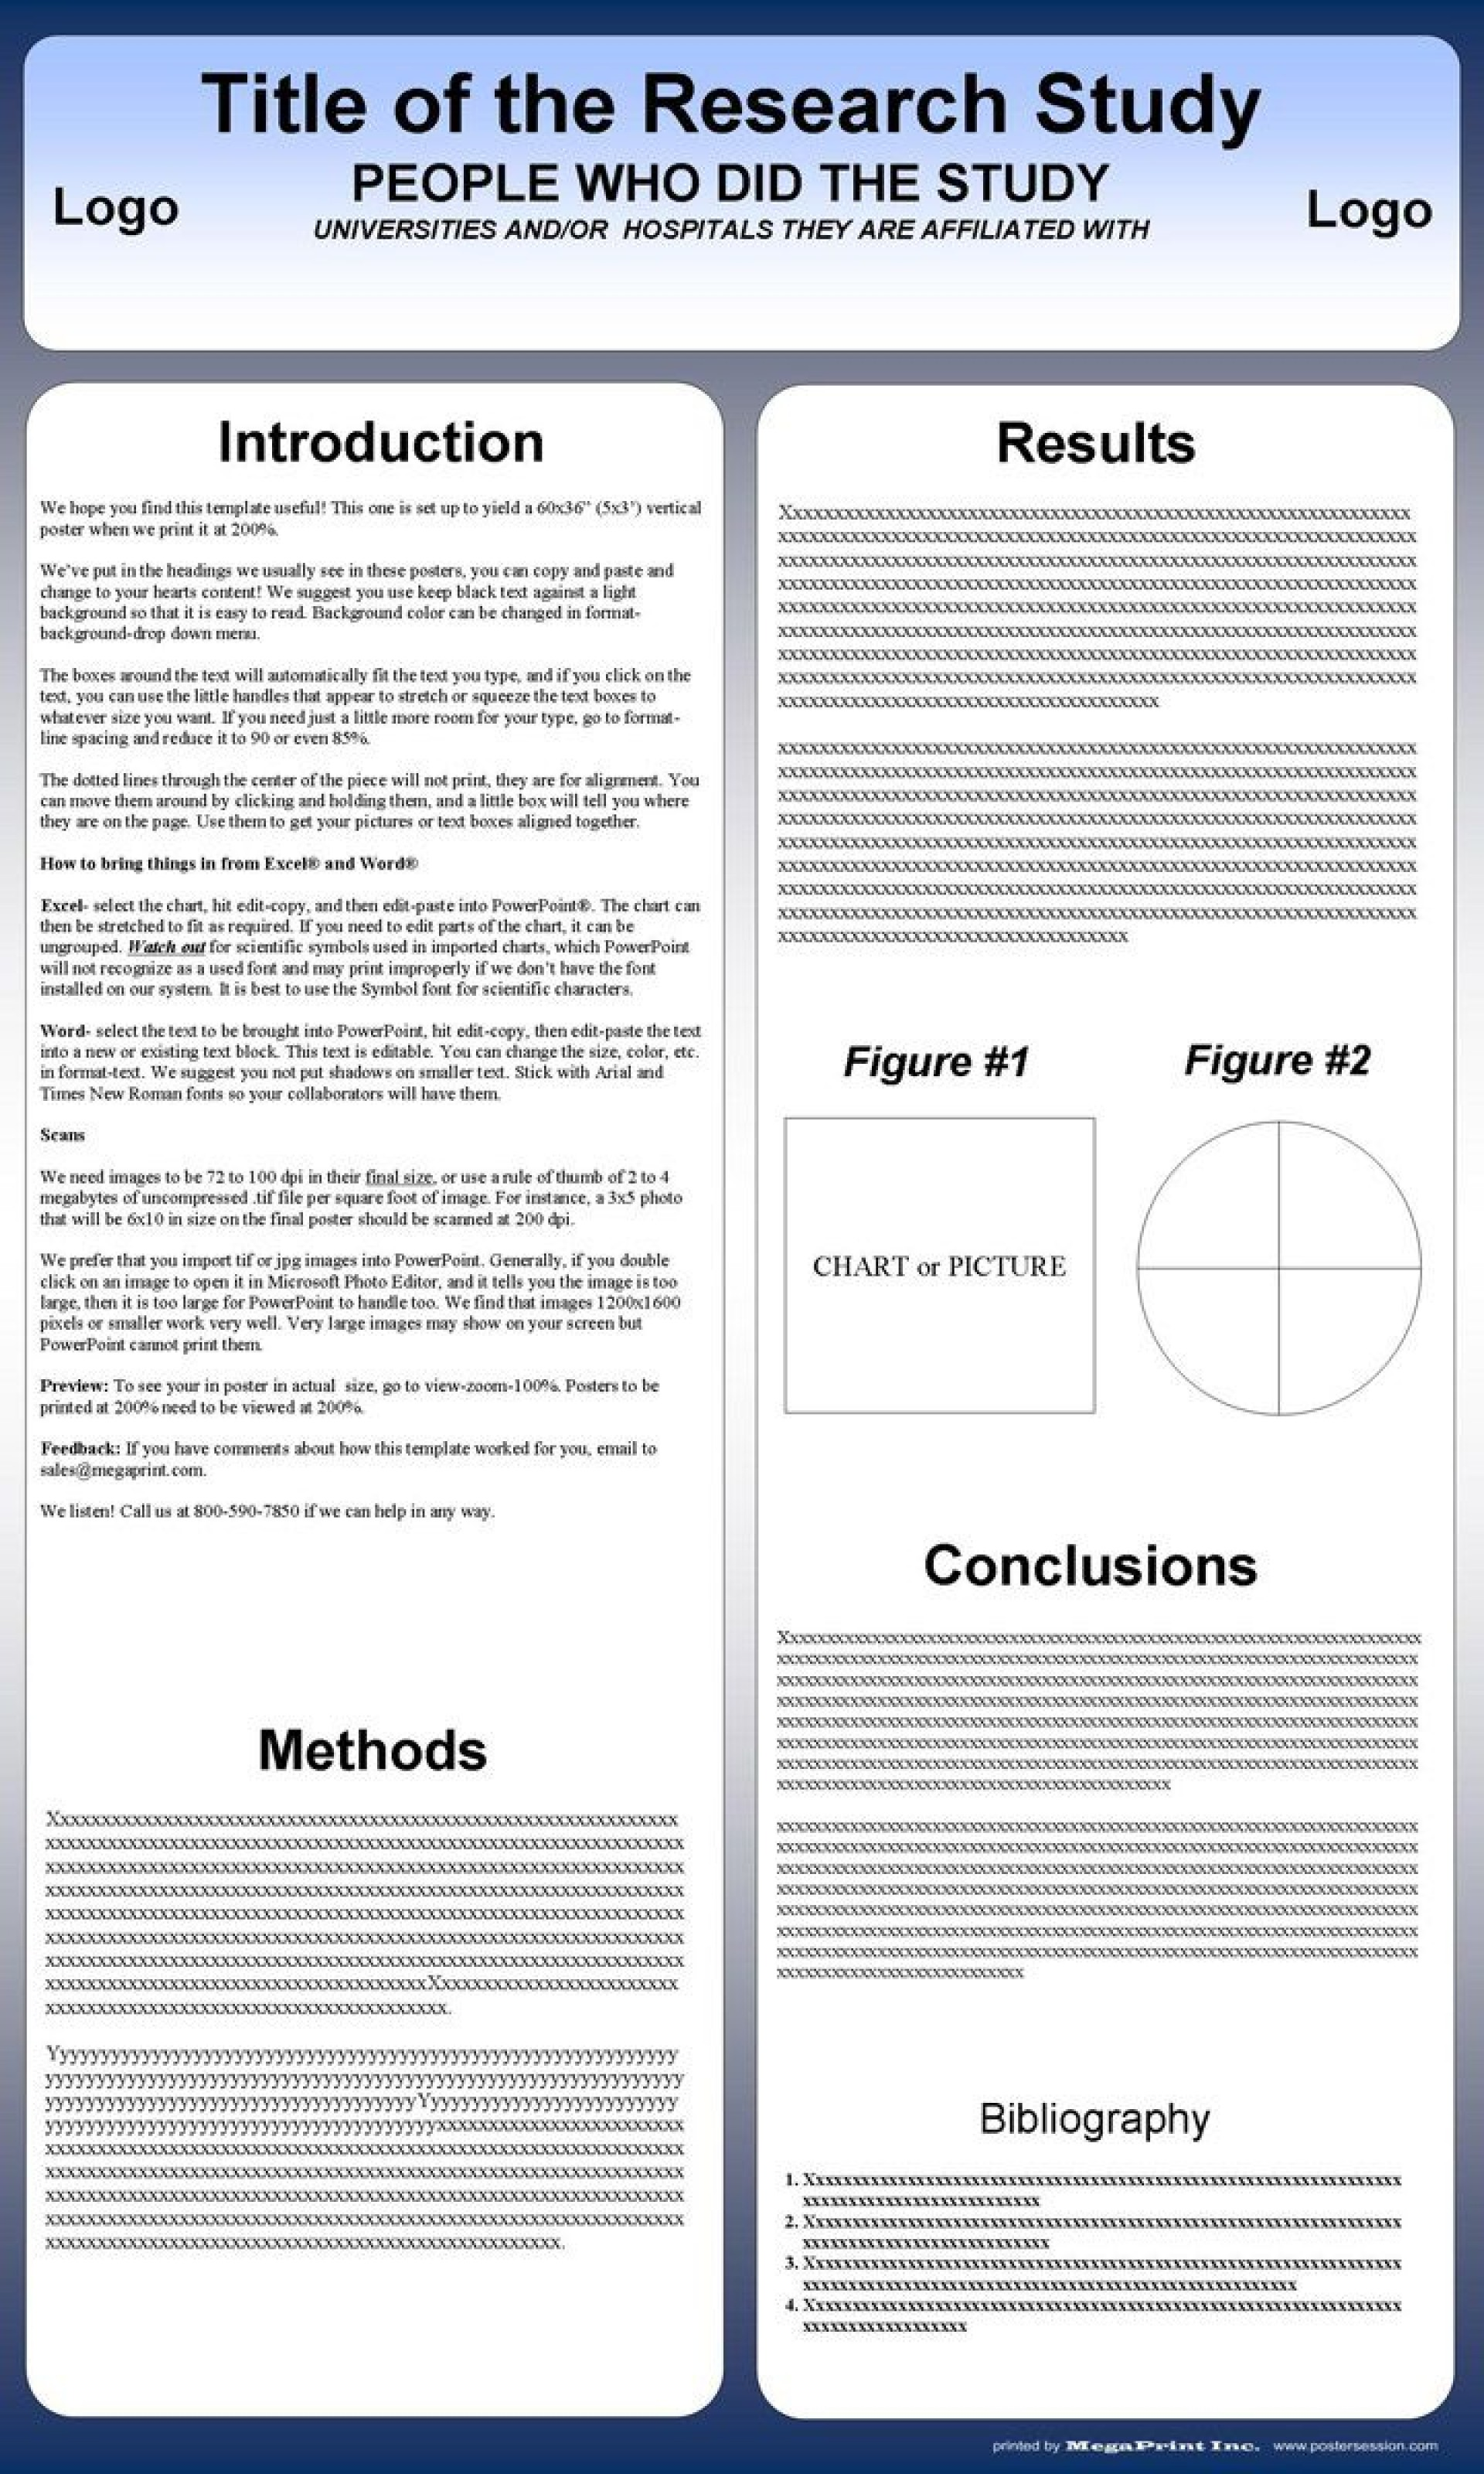 001 Excellent Poster Presentation Template Free Download Design  1m X A01920